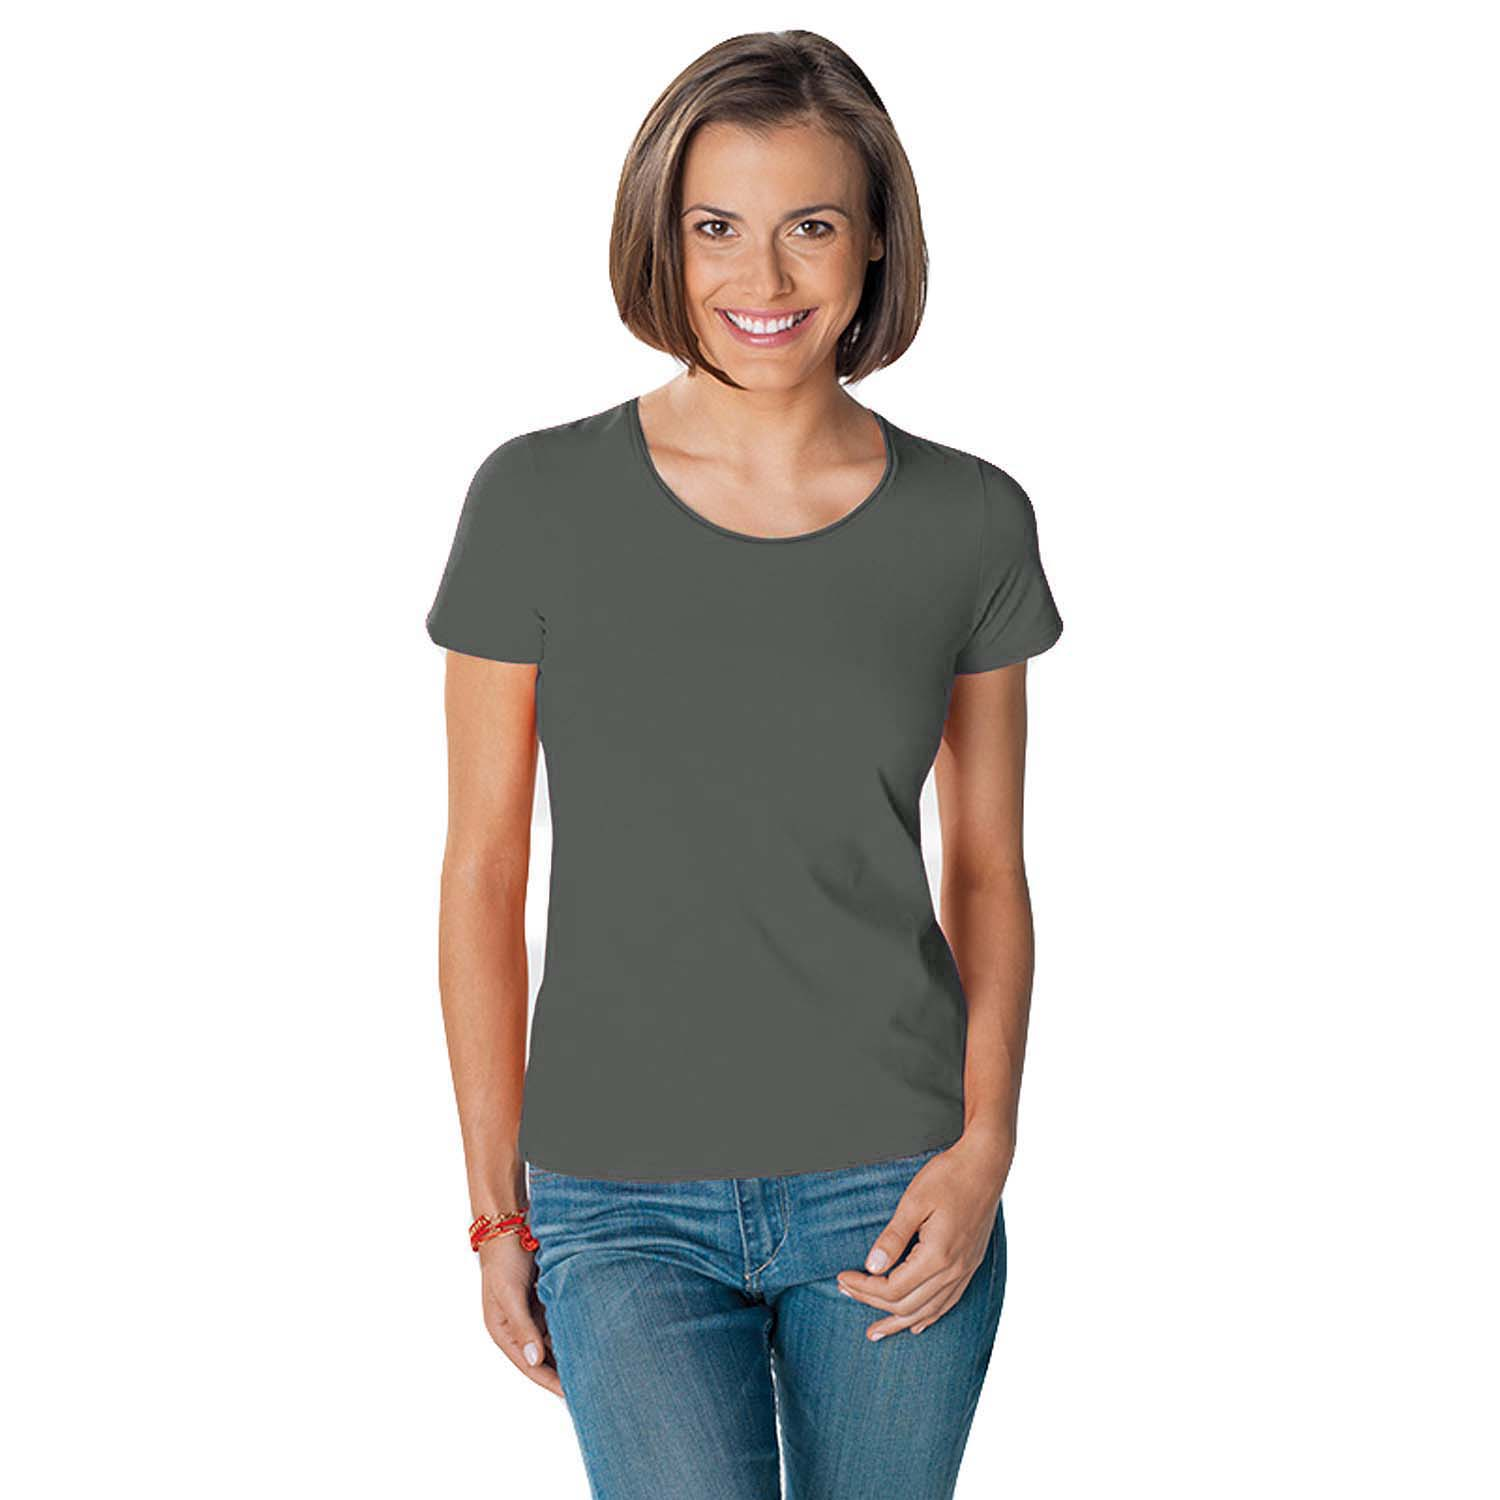 Find great deals on eBay for ladies crew neck t shirts. Shop with confidence.